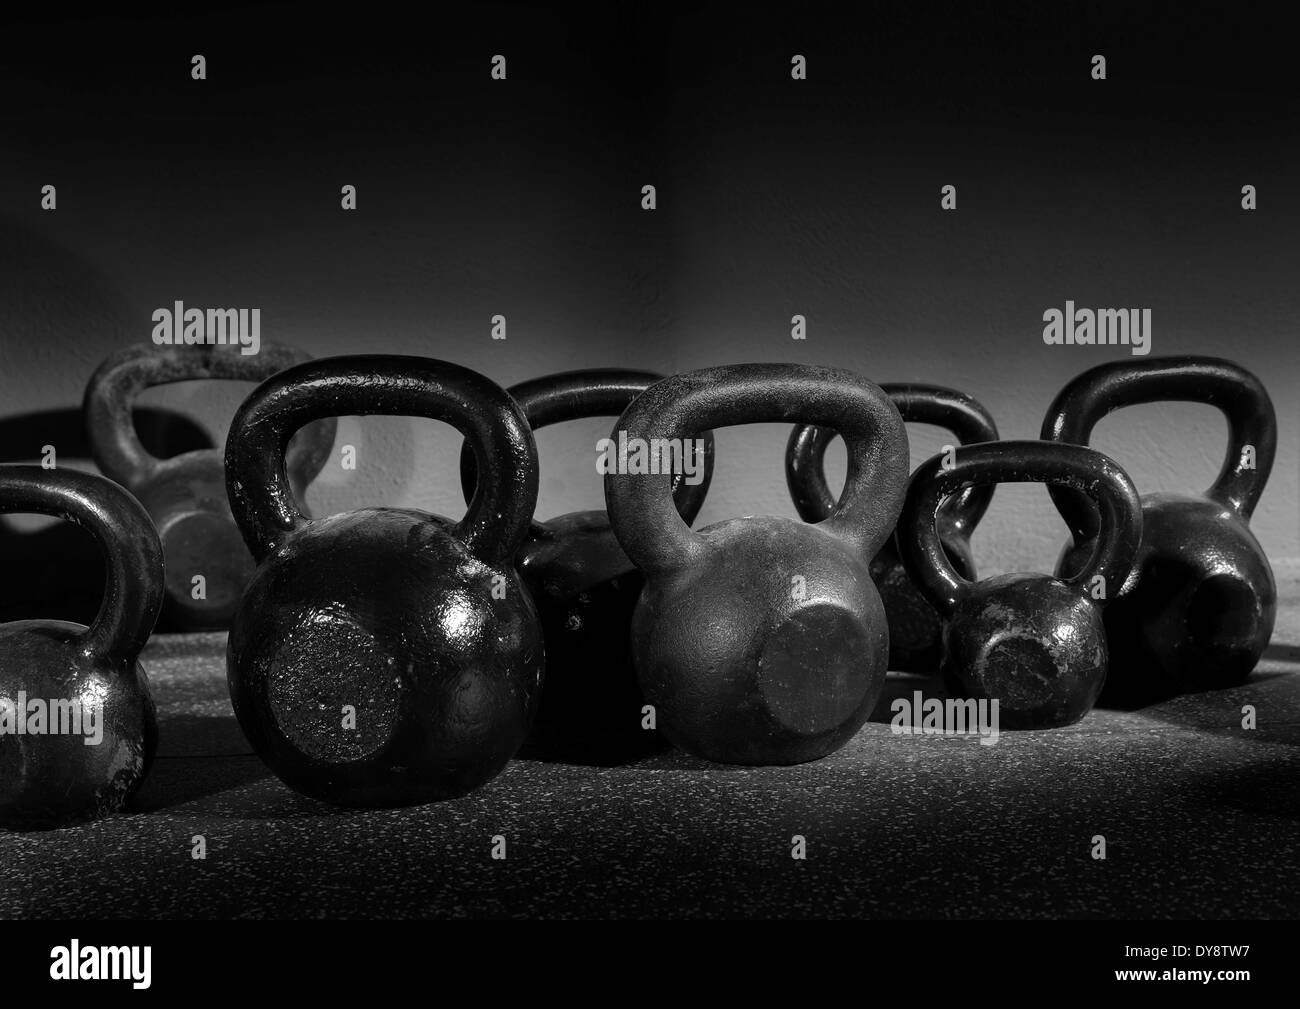 Kettlebells weights in a workout gym in black and white - Stock Image